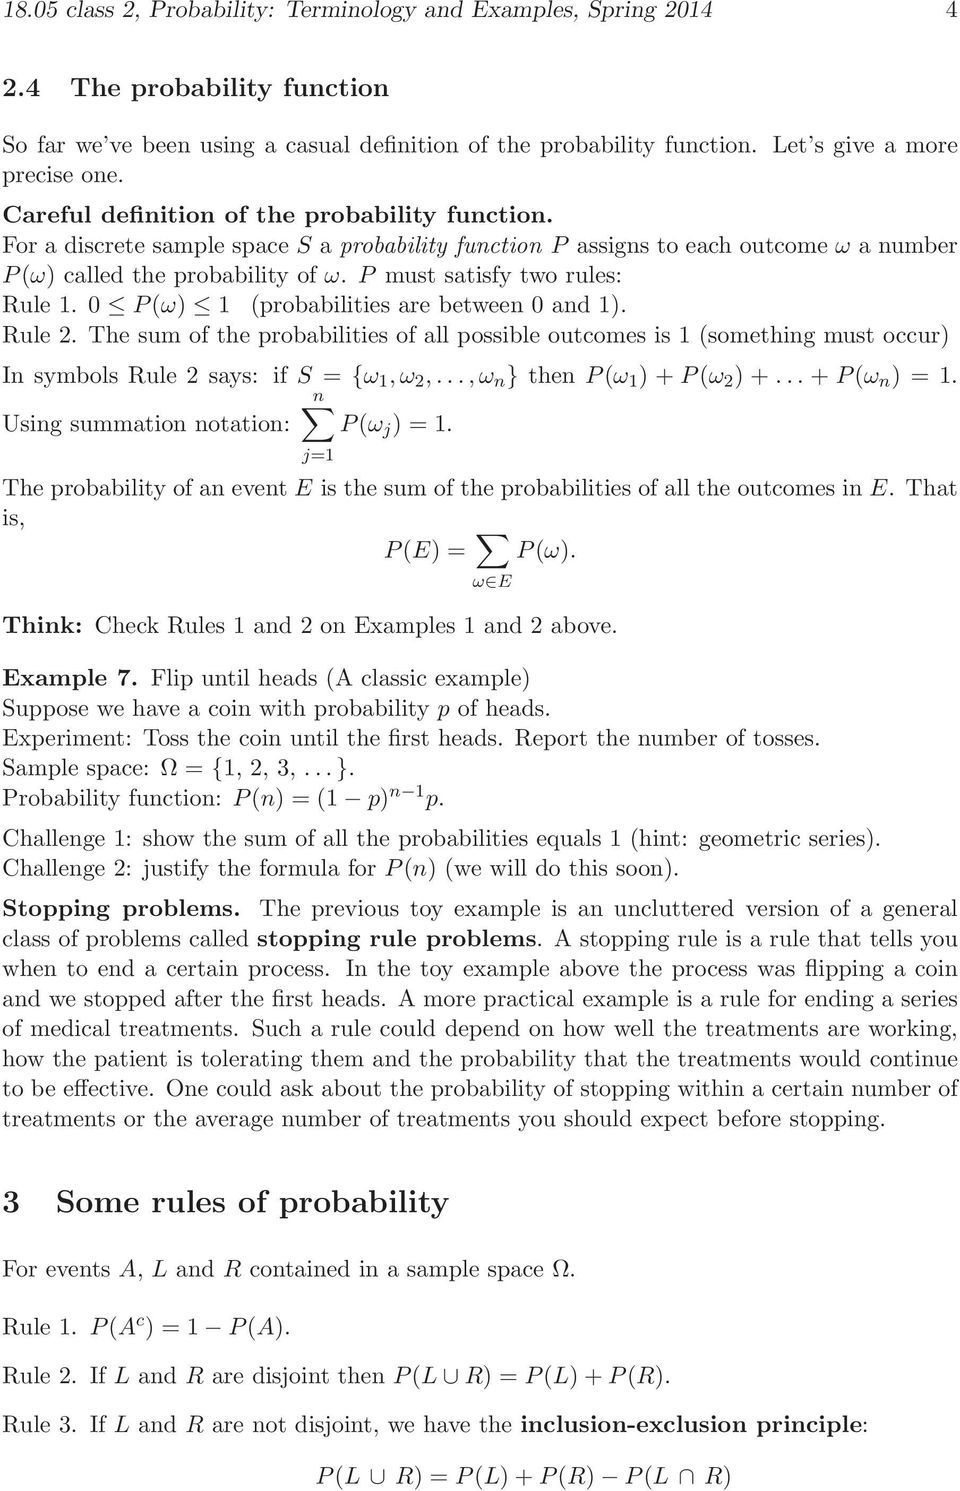 0 P (ω) 1 (probabilities are between 0 and 1). Rule 2. The sum of the probabilities of all possible outcomes is 1 (something must occur) In symbols Rule 2 says: if S = {ω 1,ω 2,.